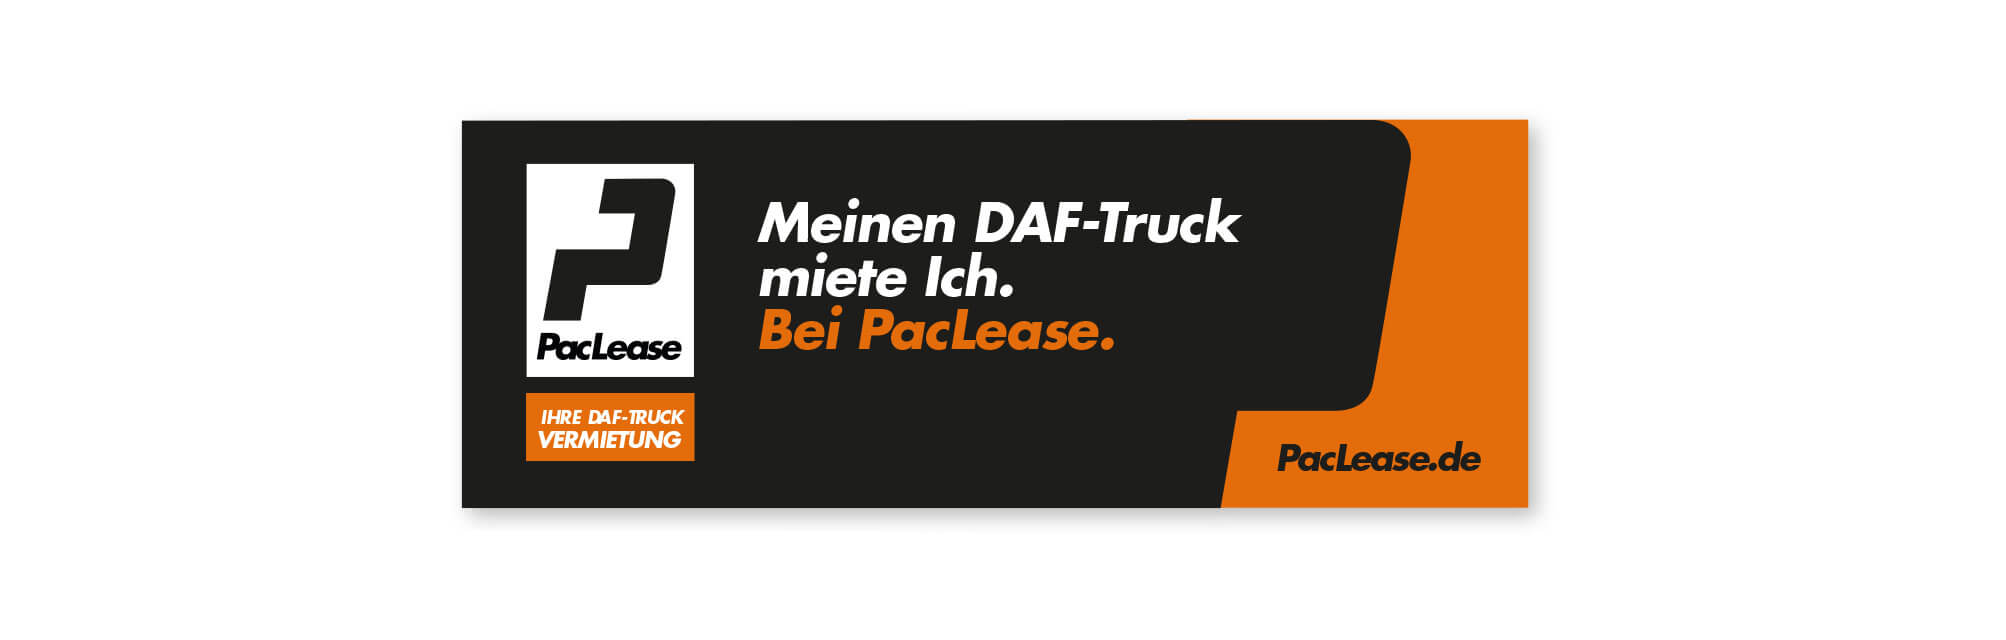 360VIER_Paclease_Slider_Keyvisual_Design_02 Paccar Leasing Deutschland GmbH